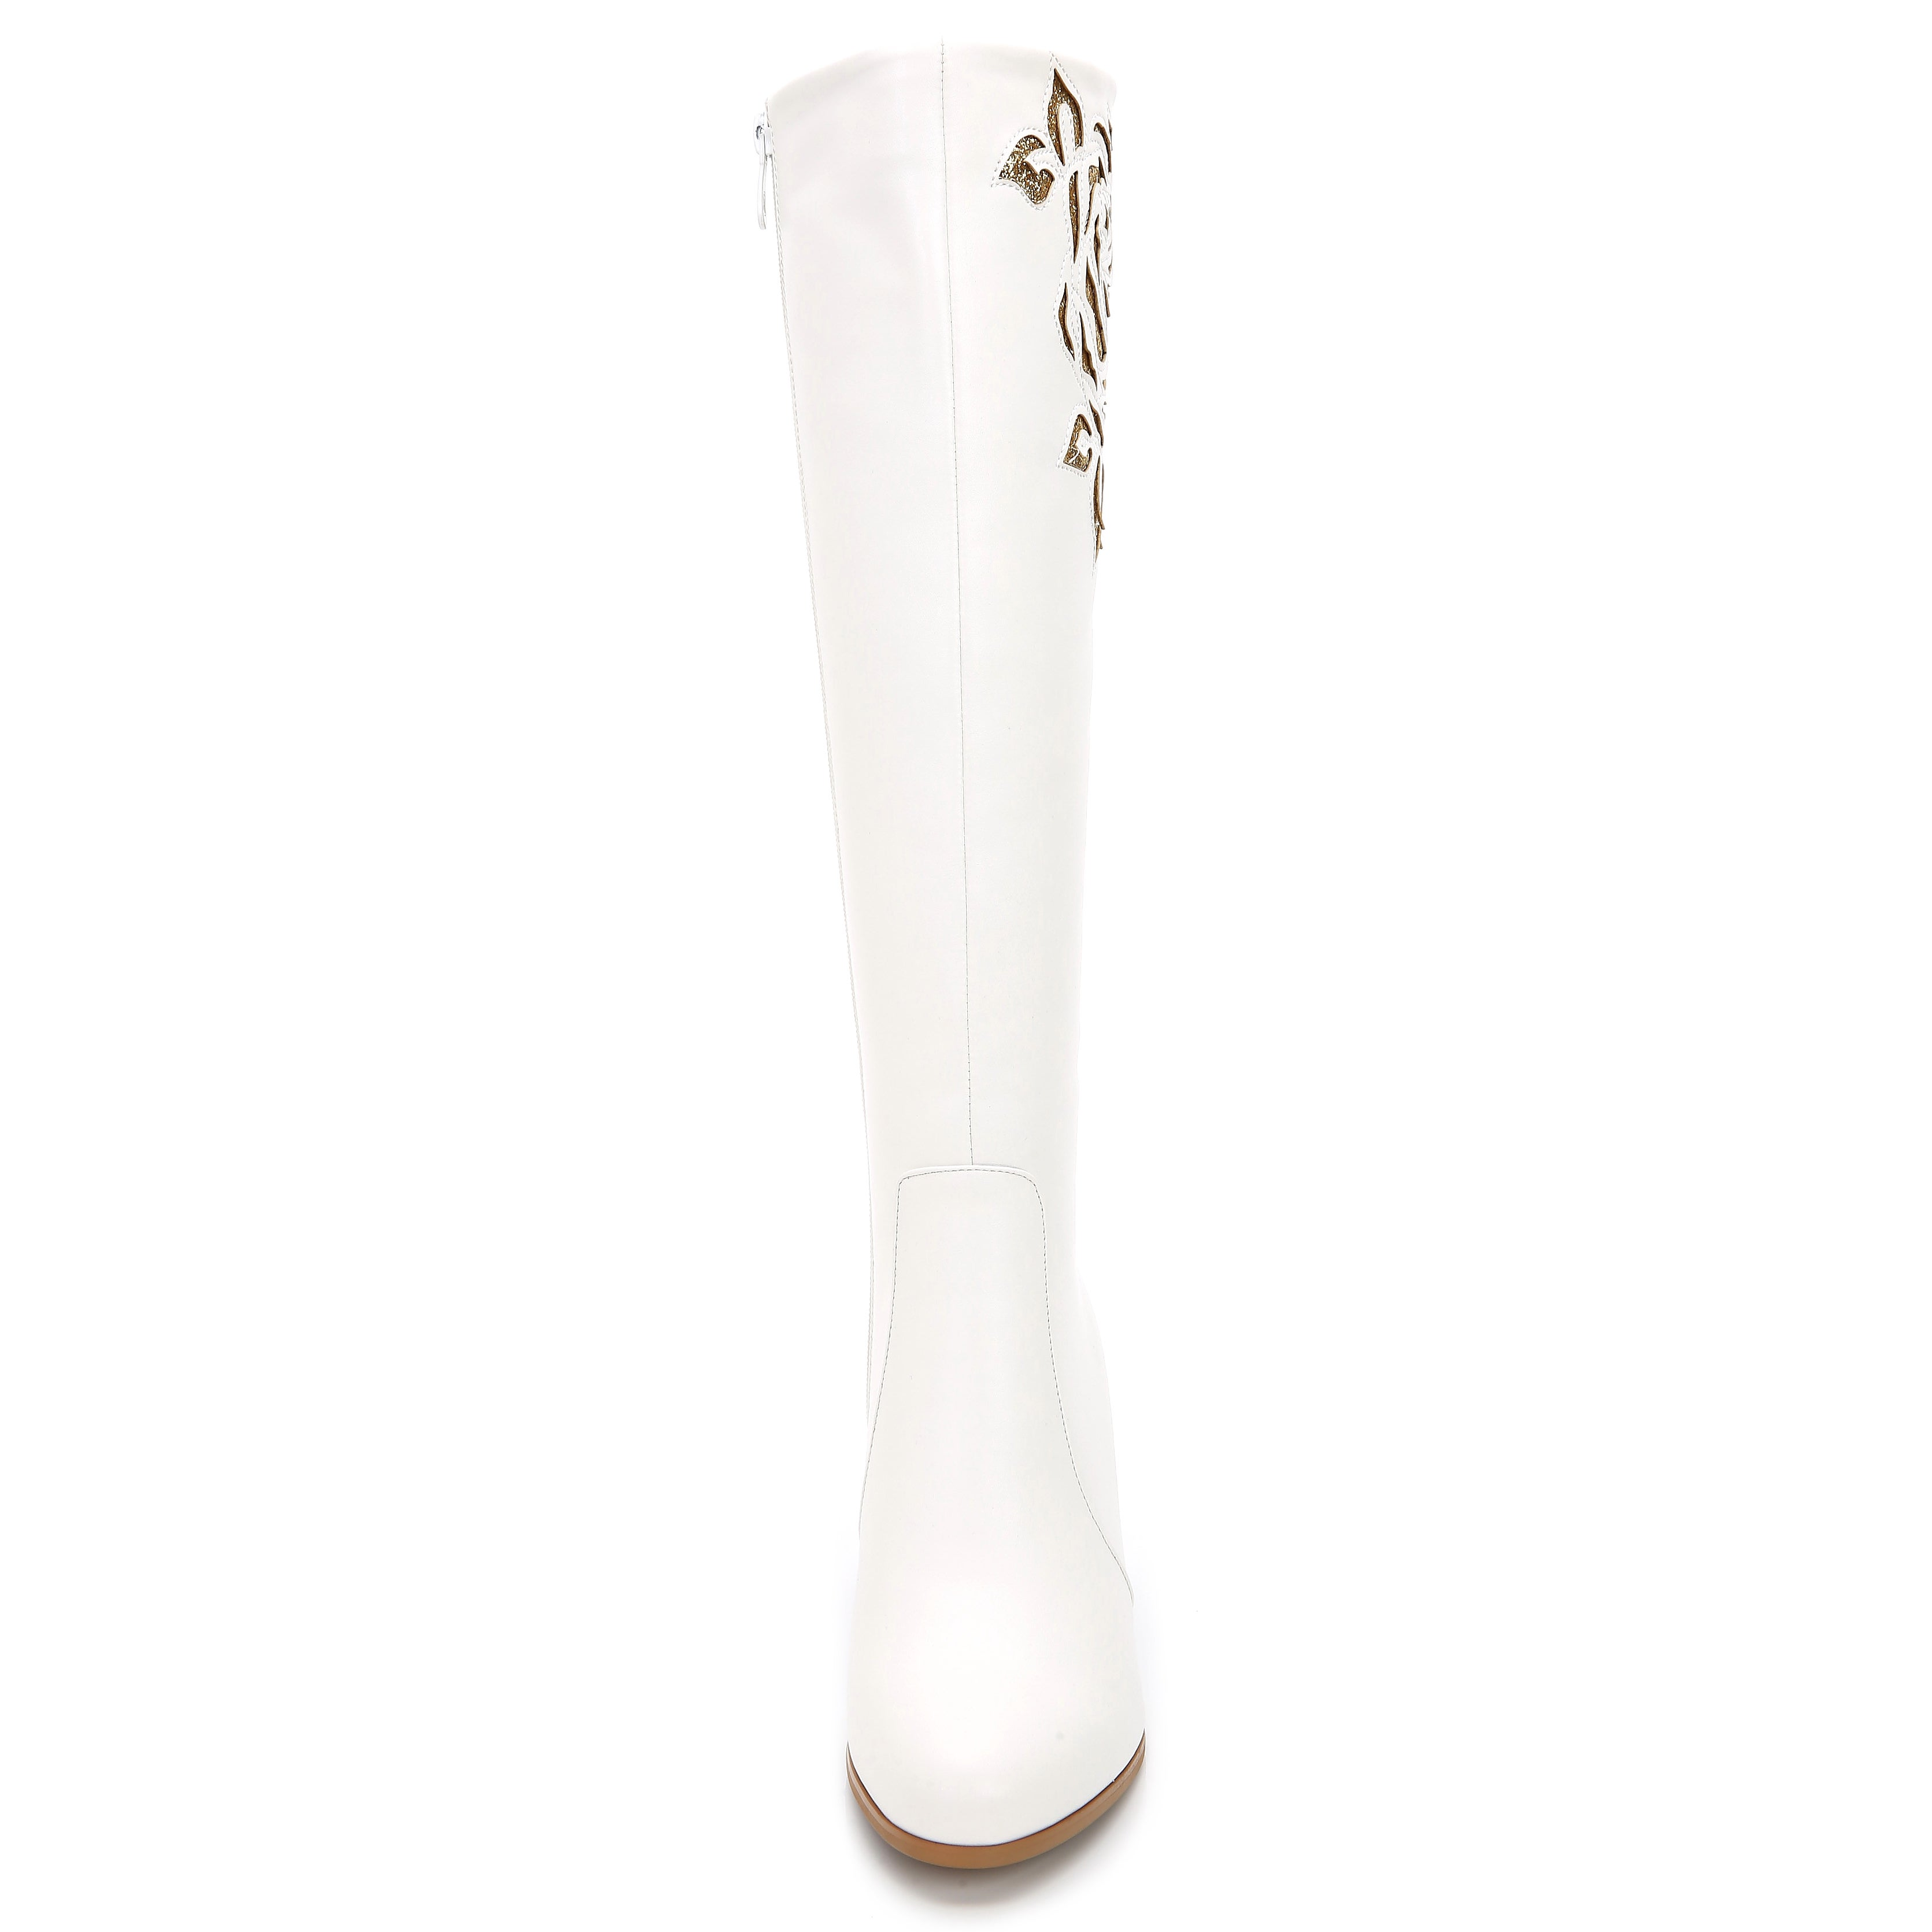 2a93b1a3cf3a87 Shop Rosewand Women s  Bolsa  White Faux Leather Patterned Stitch  Glittering Boots - Free Shipping Today - Overstock - 13928518